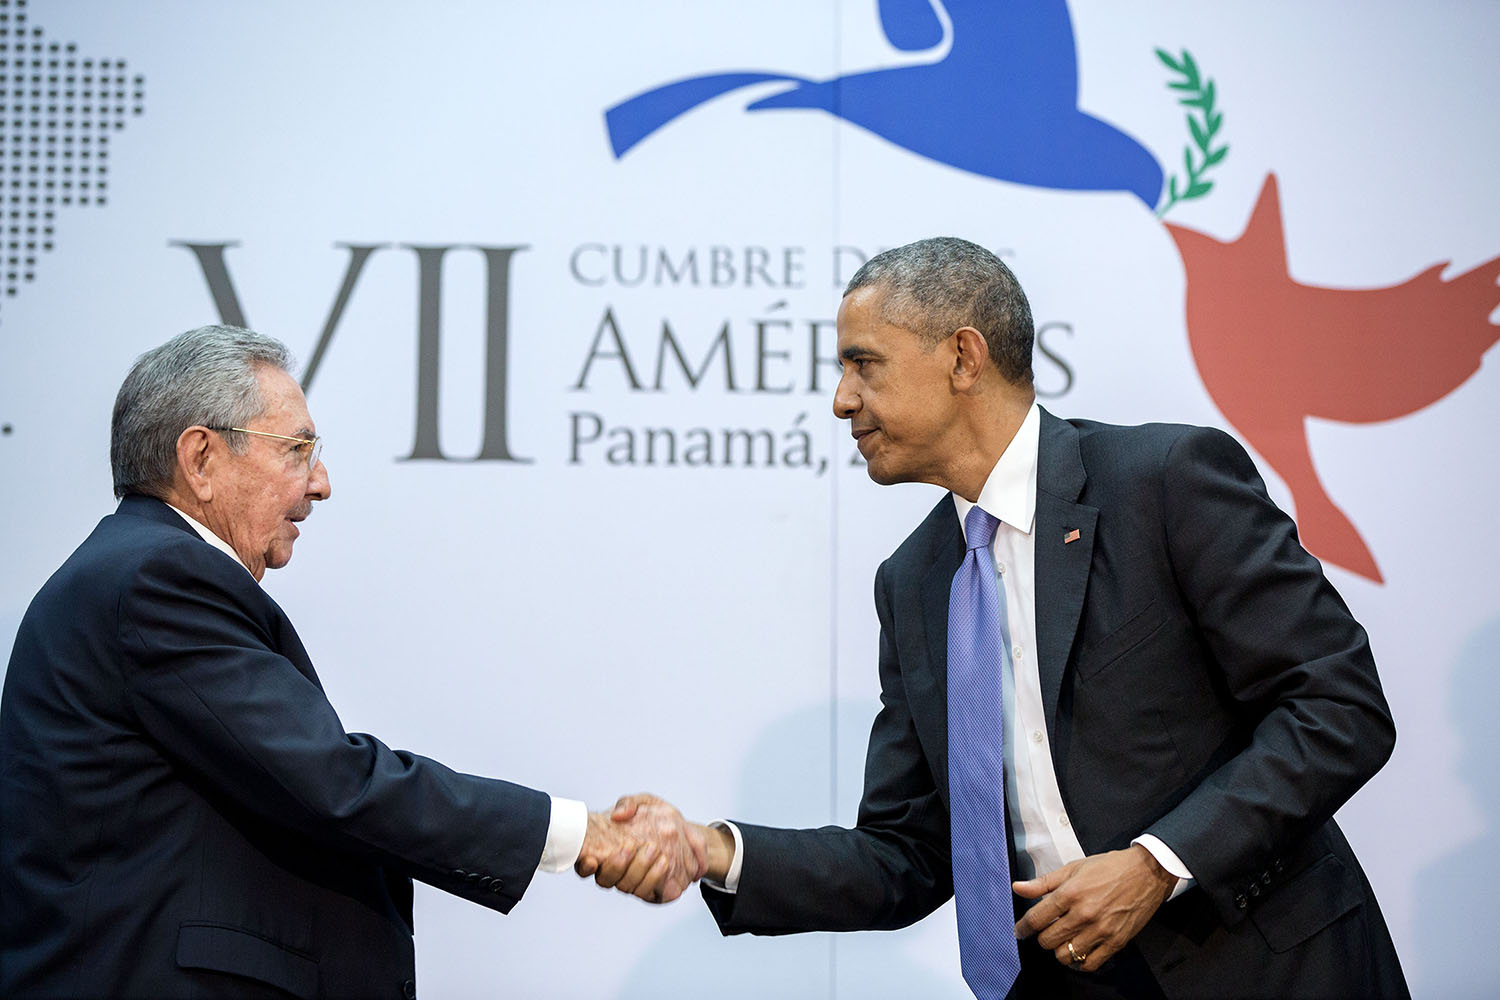 Is President Trump right to change Obama's deal with Cuba?